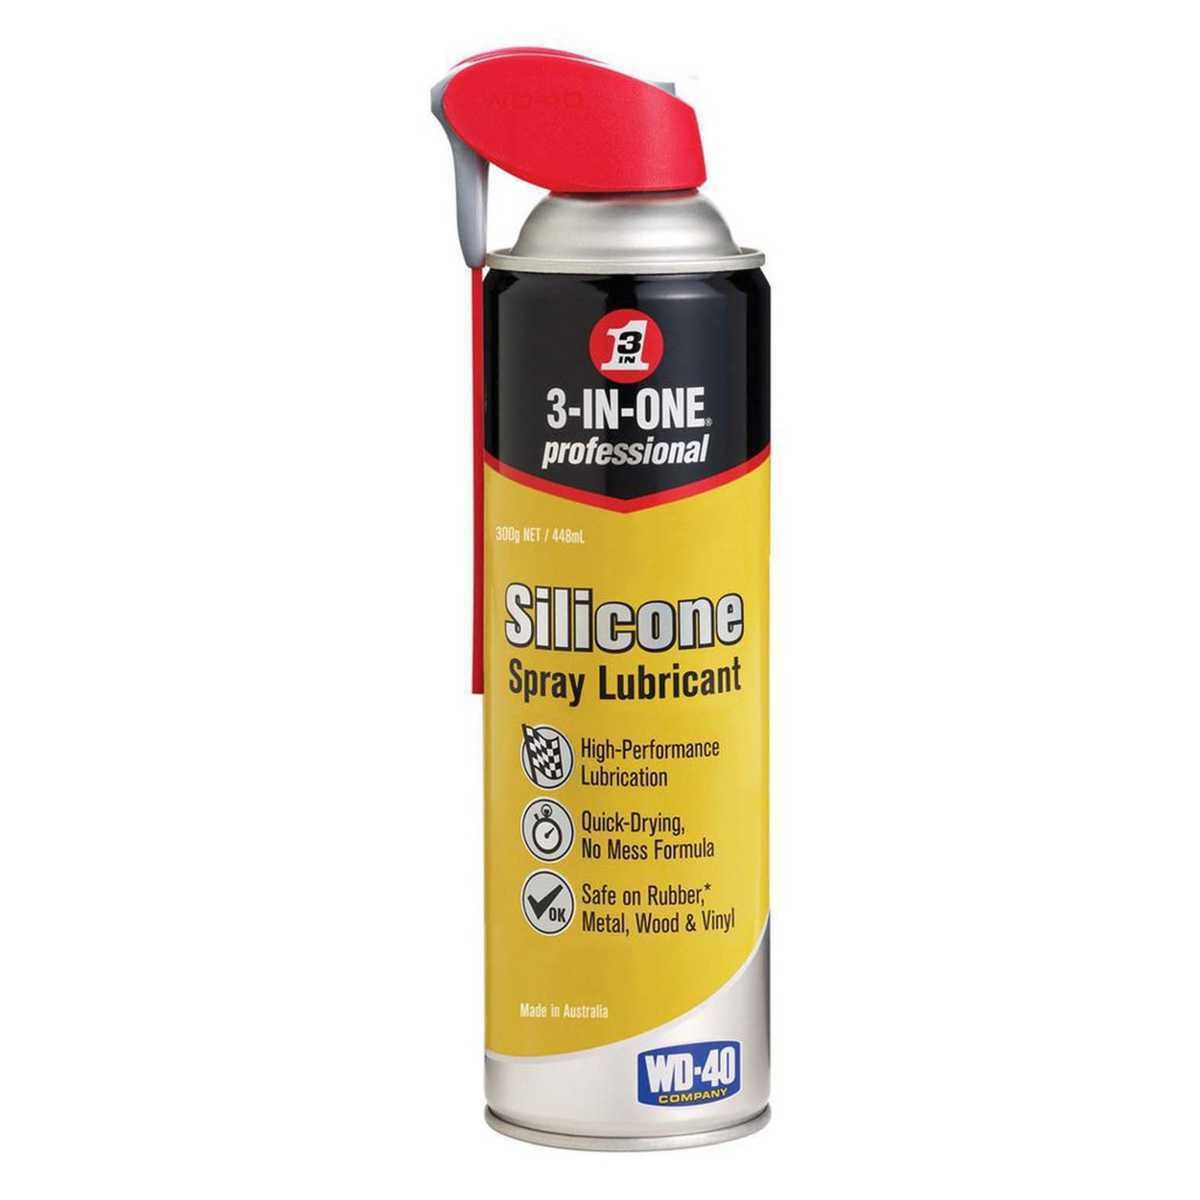 Wd 40 3 In One Silicone Spray Lubricant 300g Silicone Spray Lubricant Wd 40